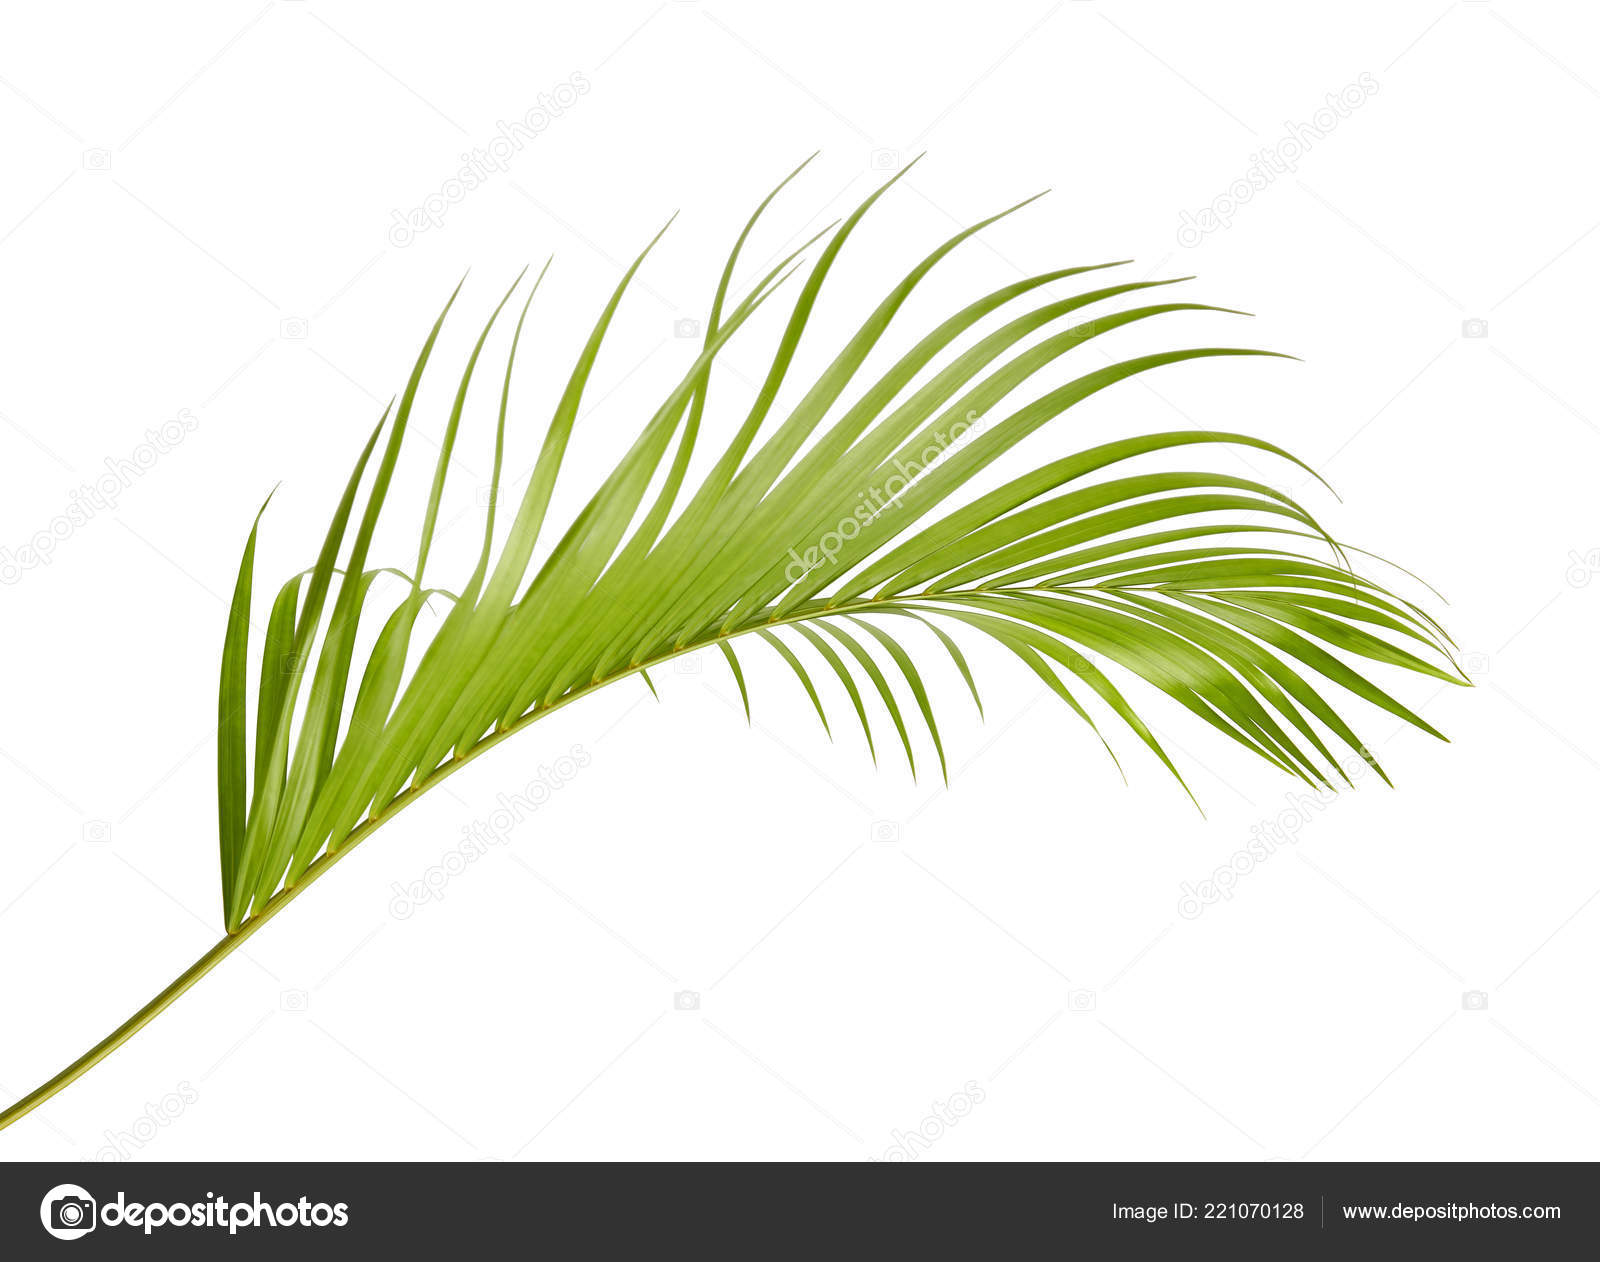 Yellow Palm Leaves Dypsis Lutescens Golden Cane Palm Areca Palm Stock Photo Image By Dewins 221070128